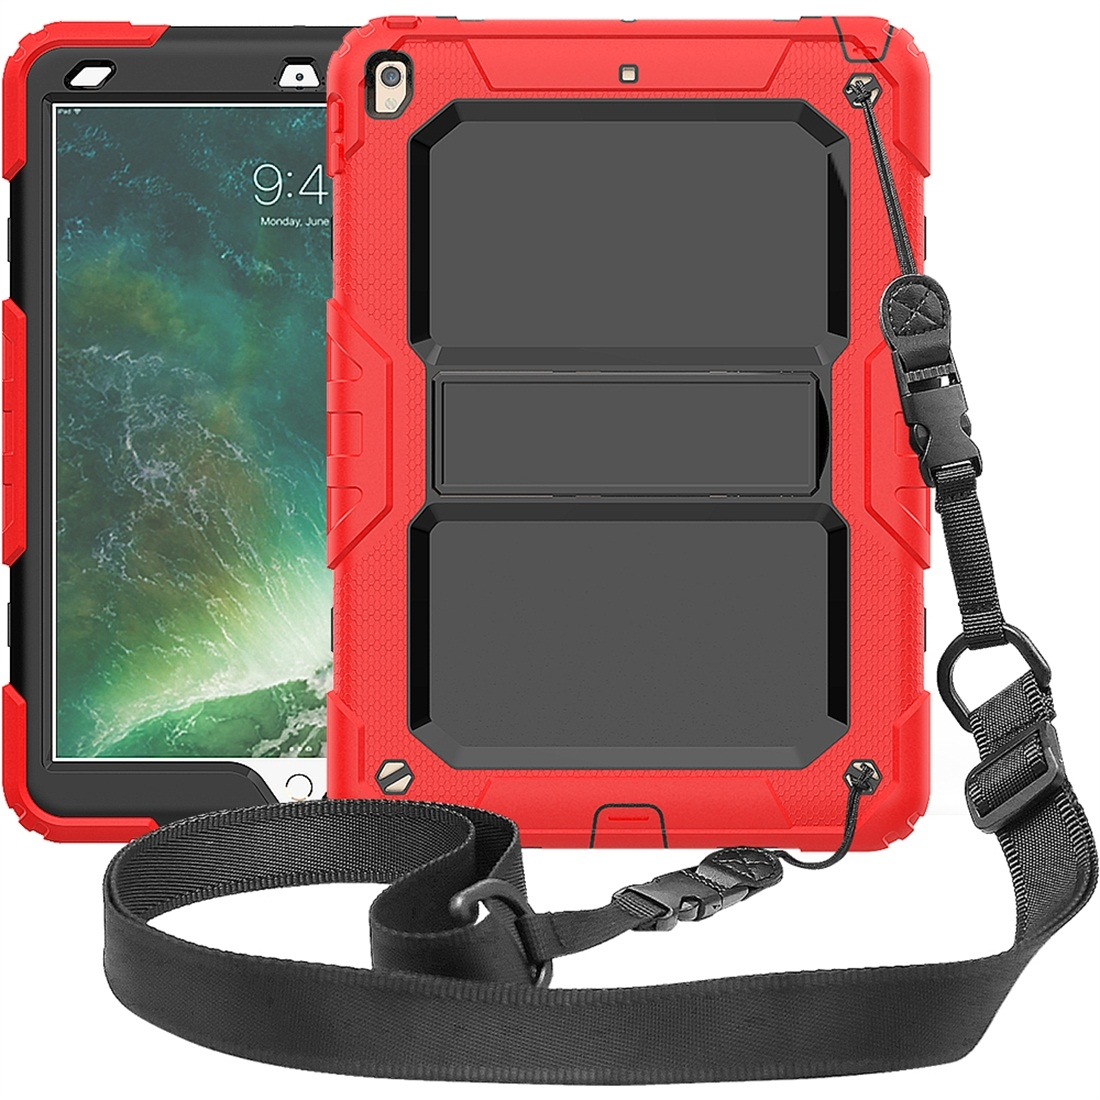 Shockproof Protective And Durable iPad Air Case (10.5 Inch), with Shoulder Strap (Red)